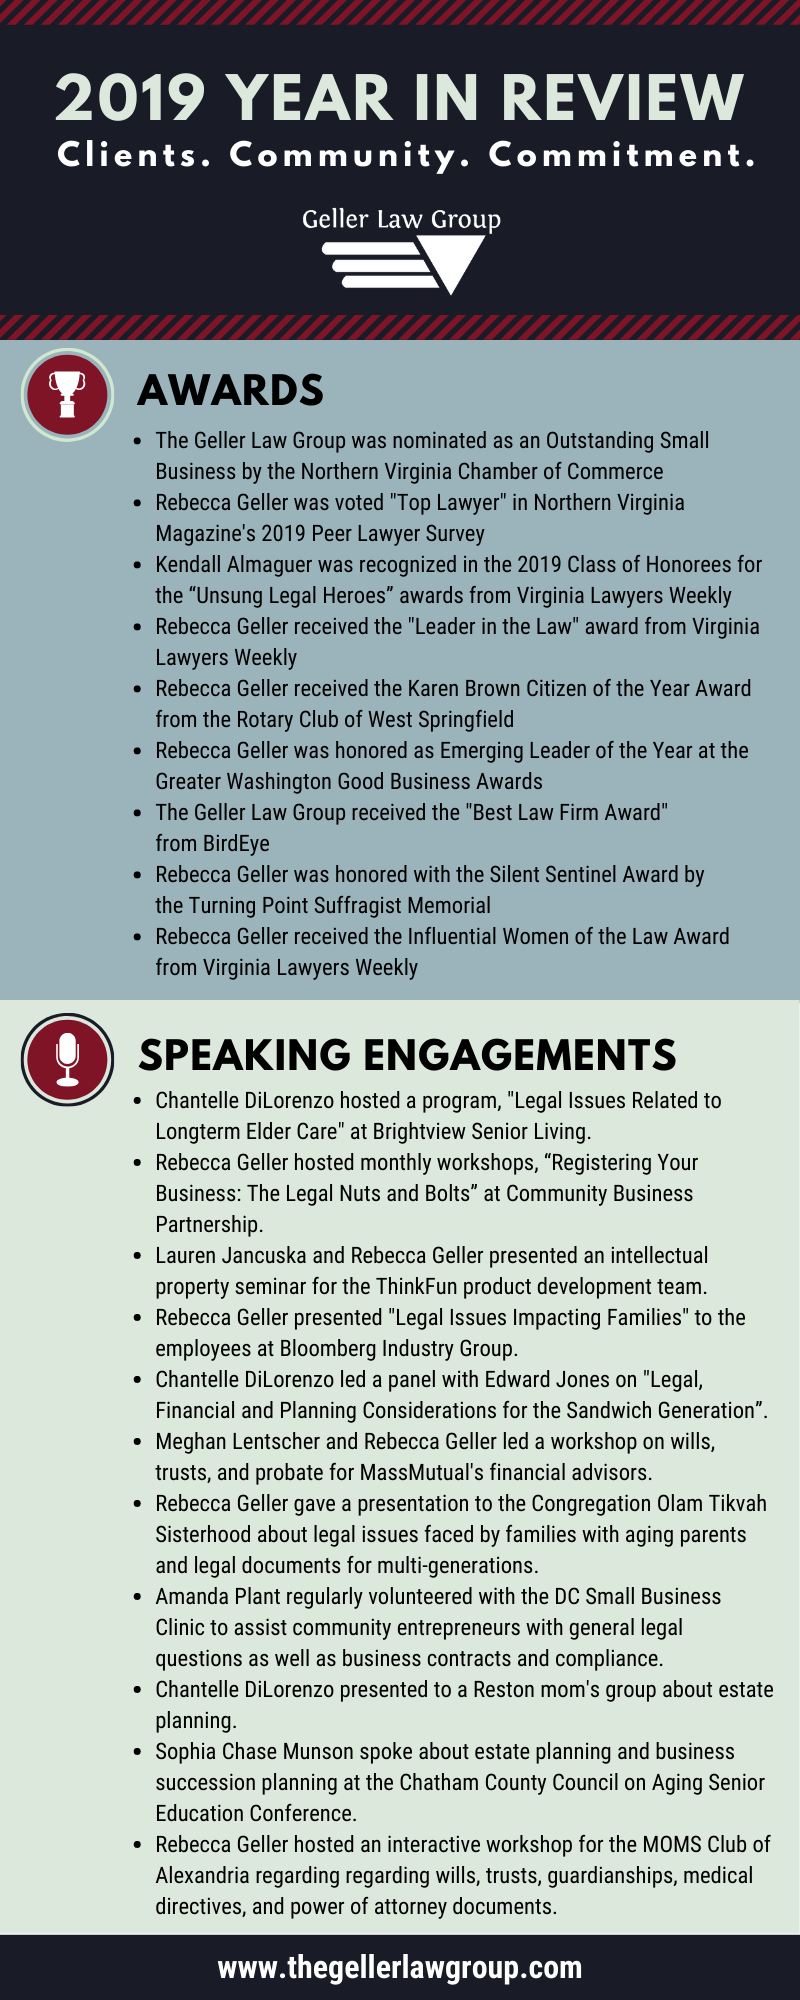 2019 Geller Law Group Year in Review - Awards and Speaking Engagements